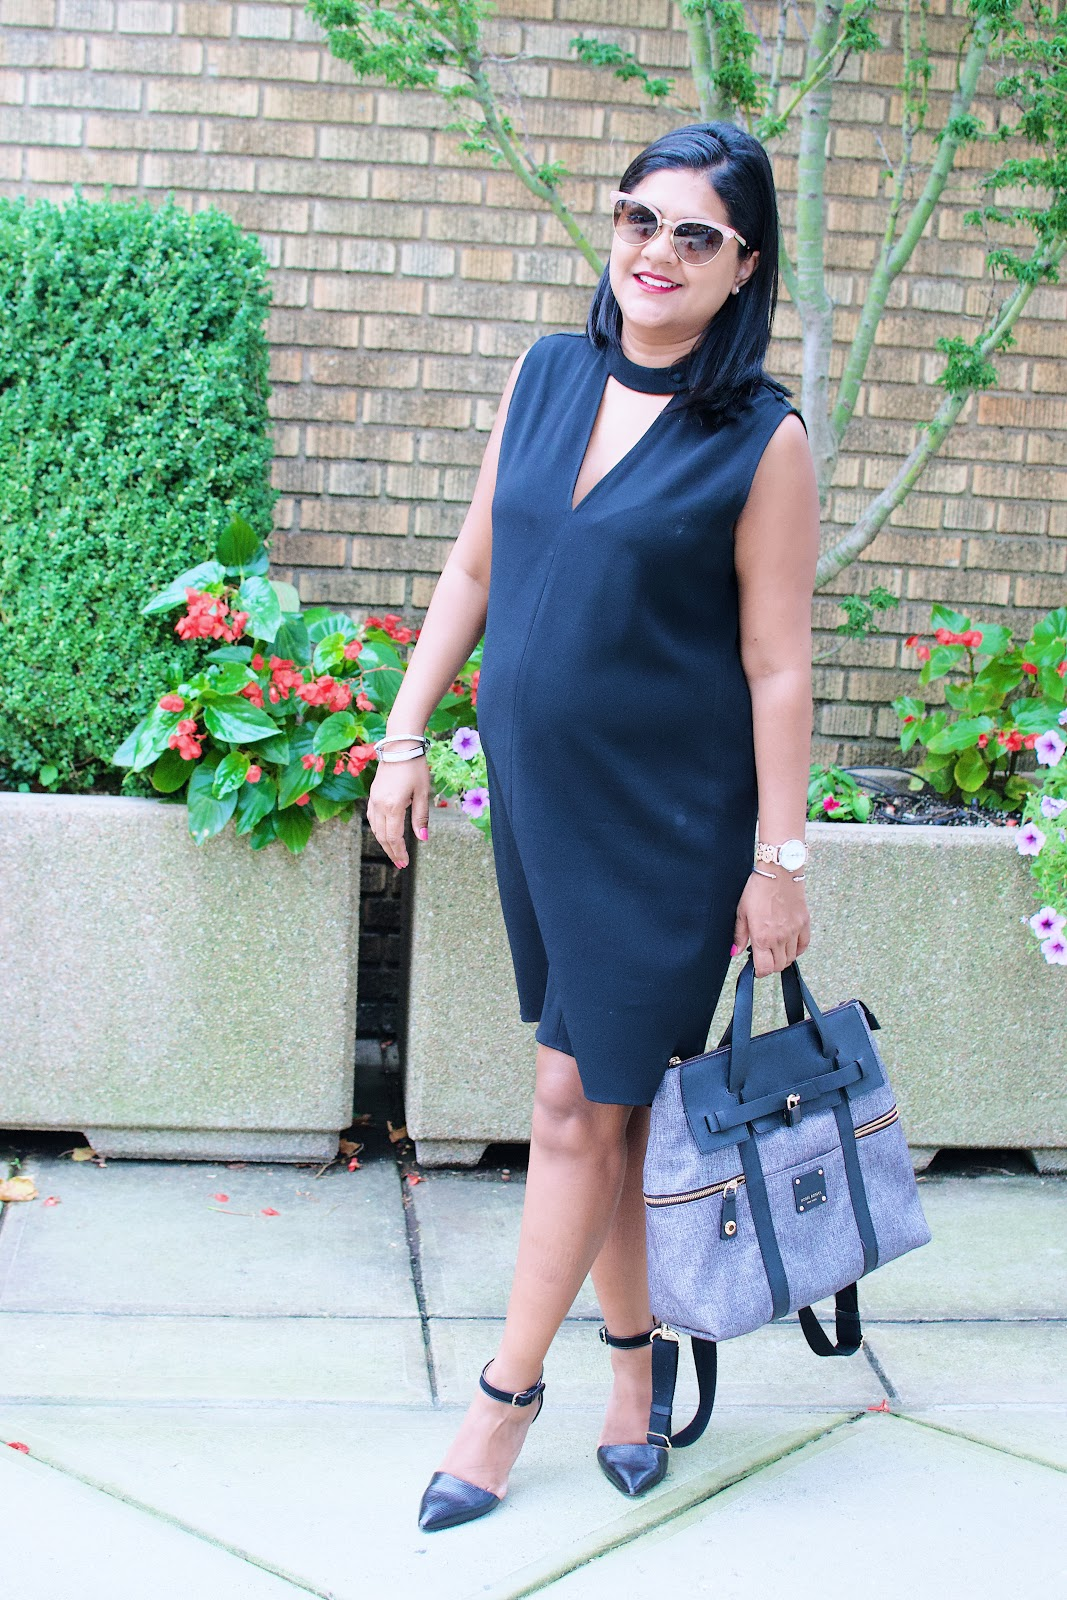 maternity style, dressing the bump, 6 months pregnant fashion